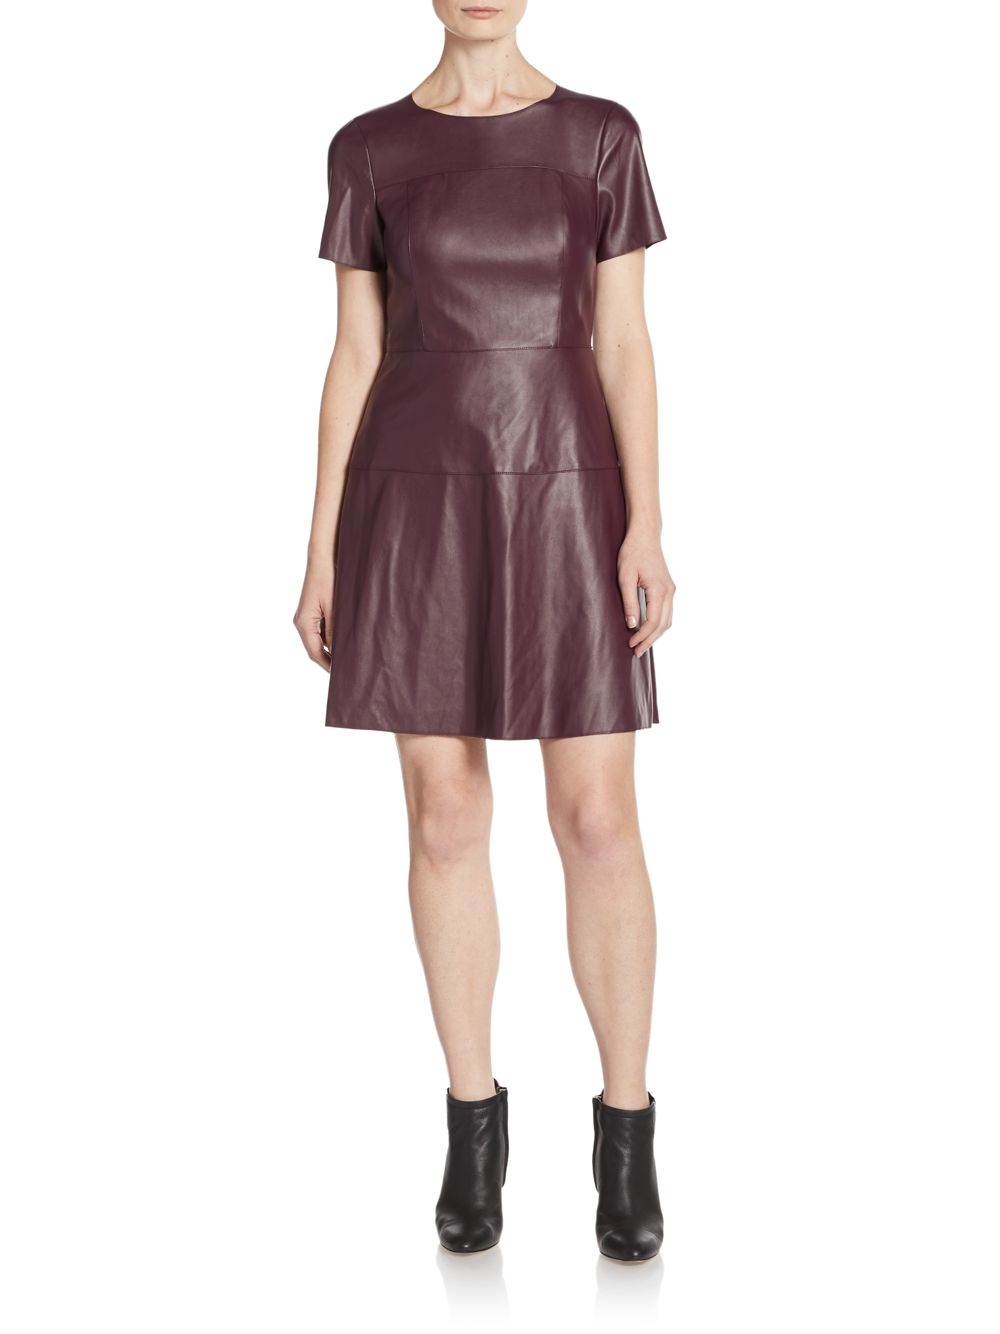 69ce3a4310d Lyst - Saks Fifth Avenue Faux Leather Paneled A-line Dress in Red